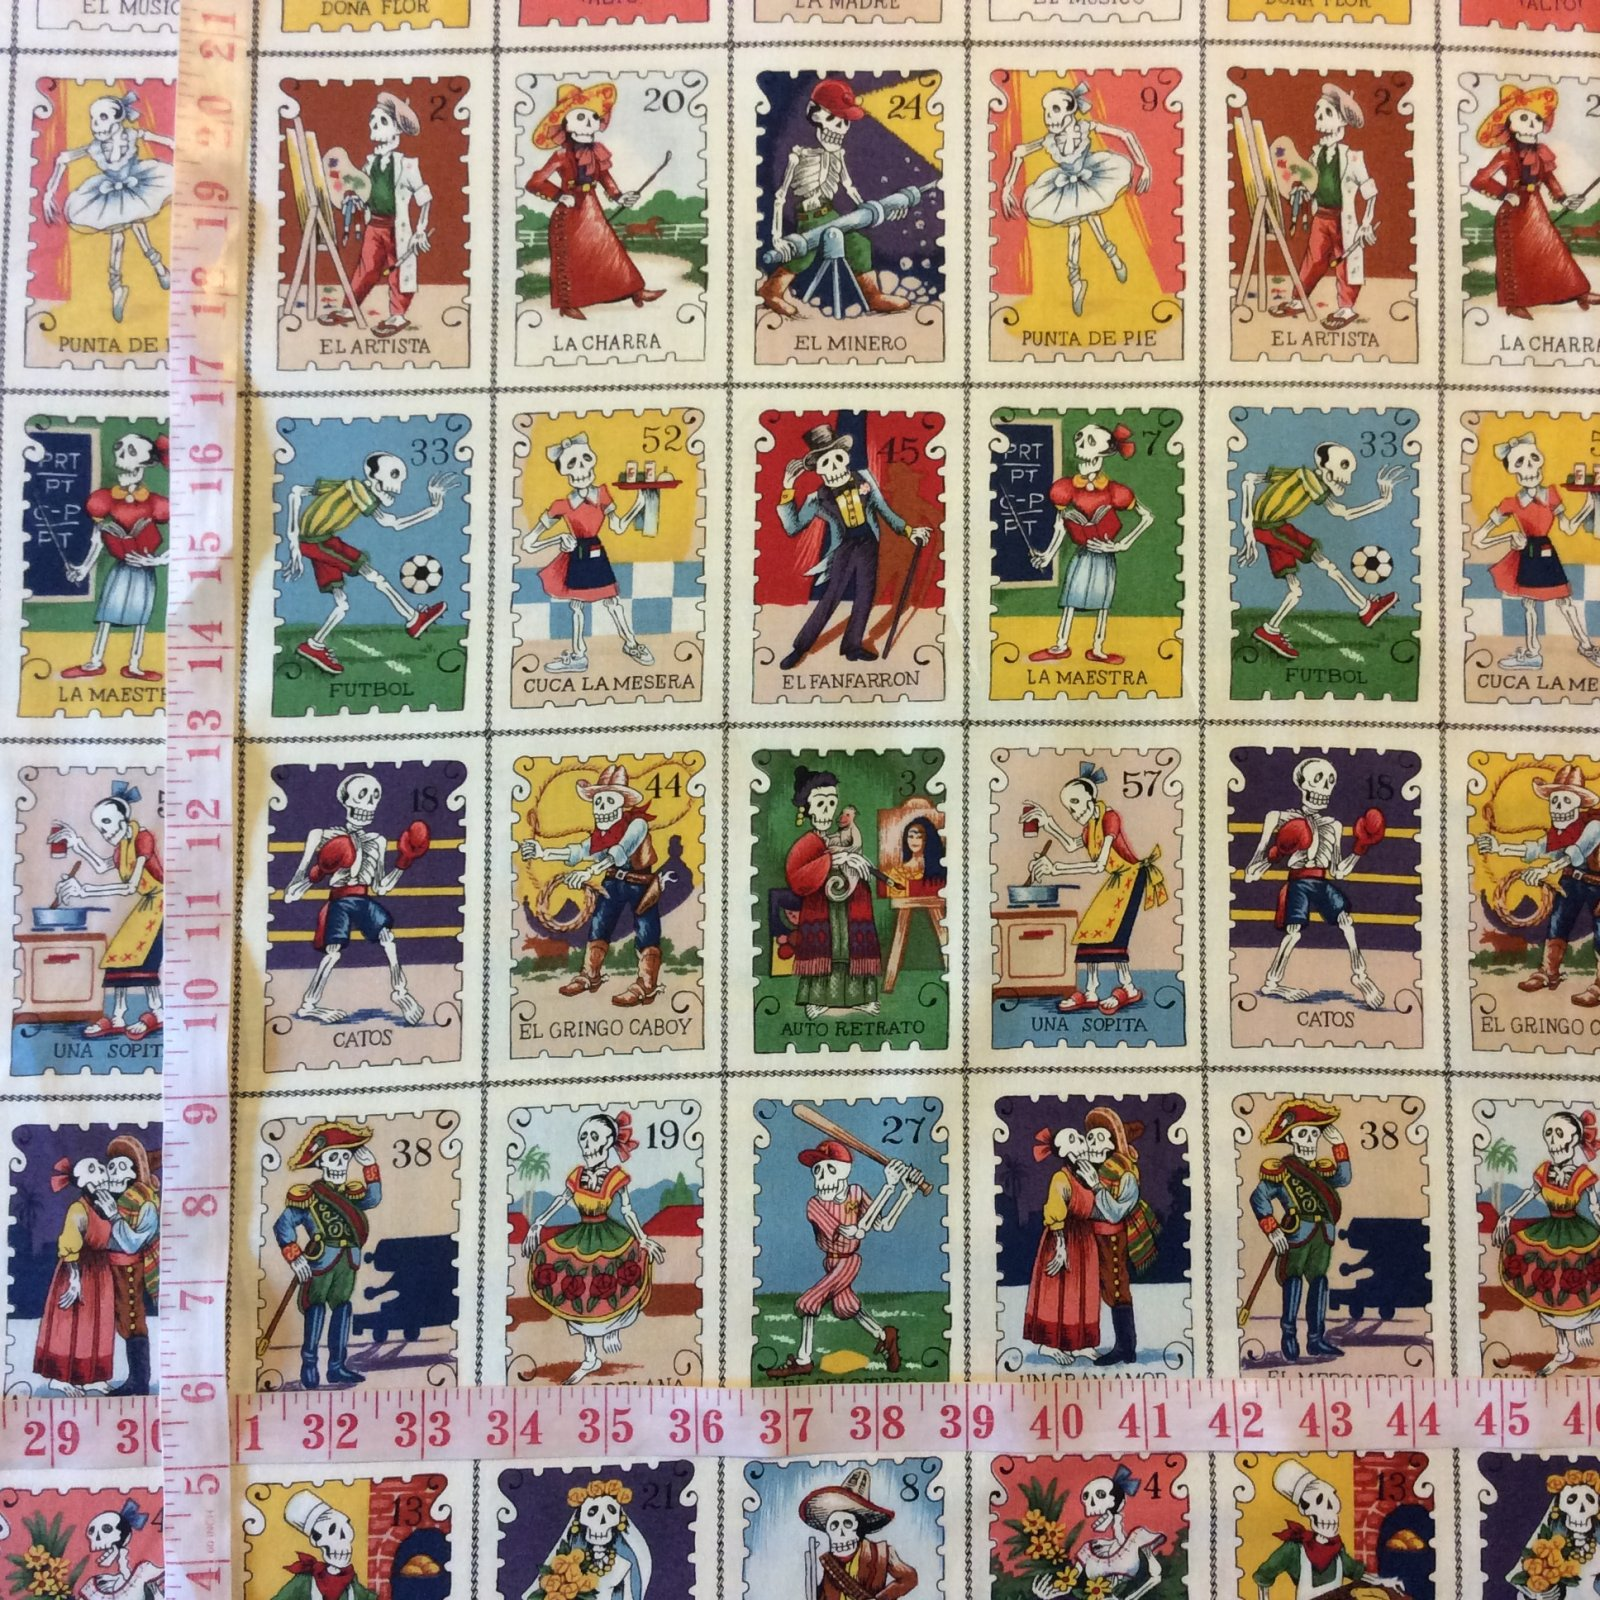 Cartas Marcadas BTY Alexander Henry PNL91 Tarot Cards Loteria Lottery Day of the Dead Mexico Cotton Fabric Quilt Fabric AH101